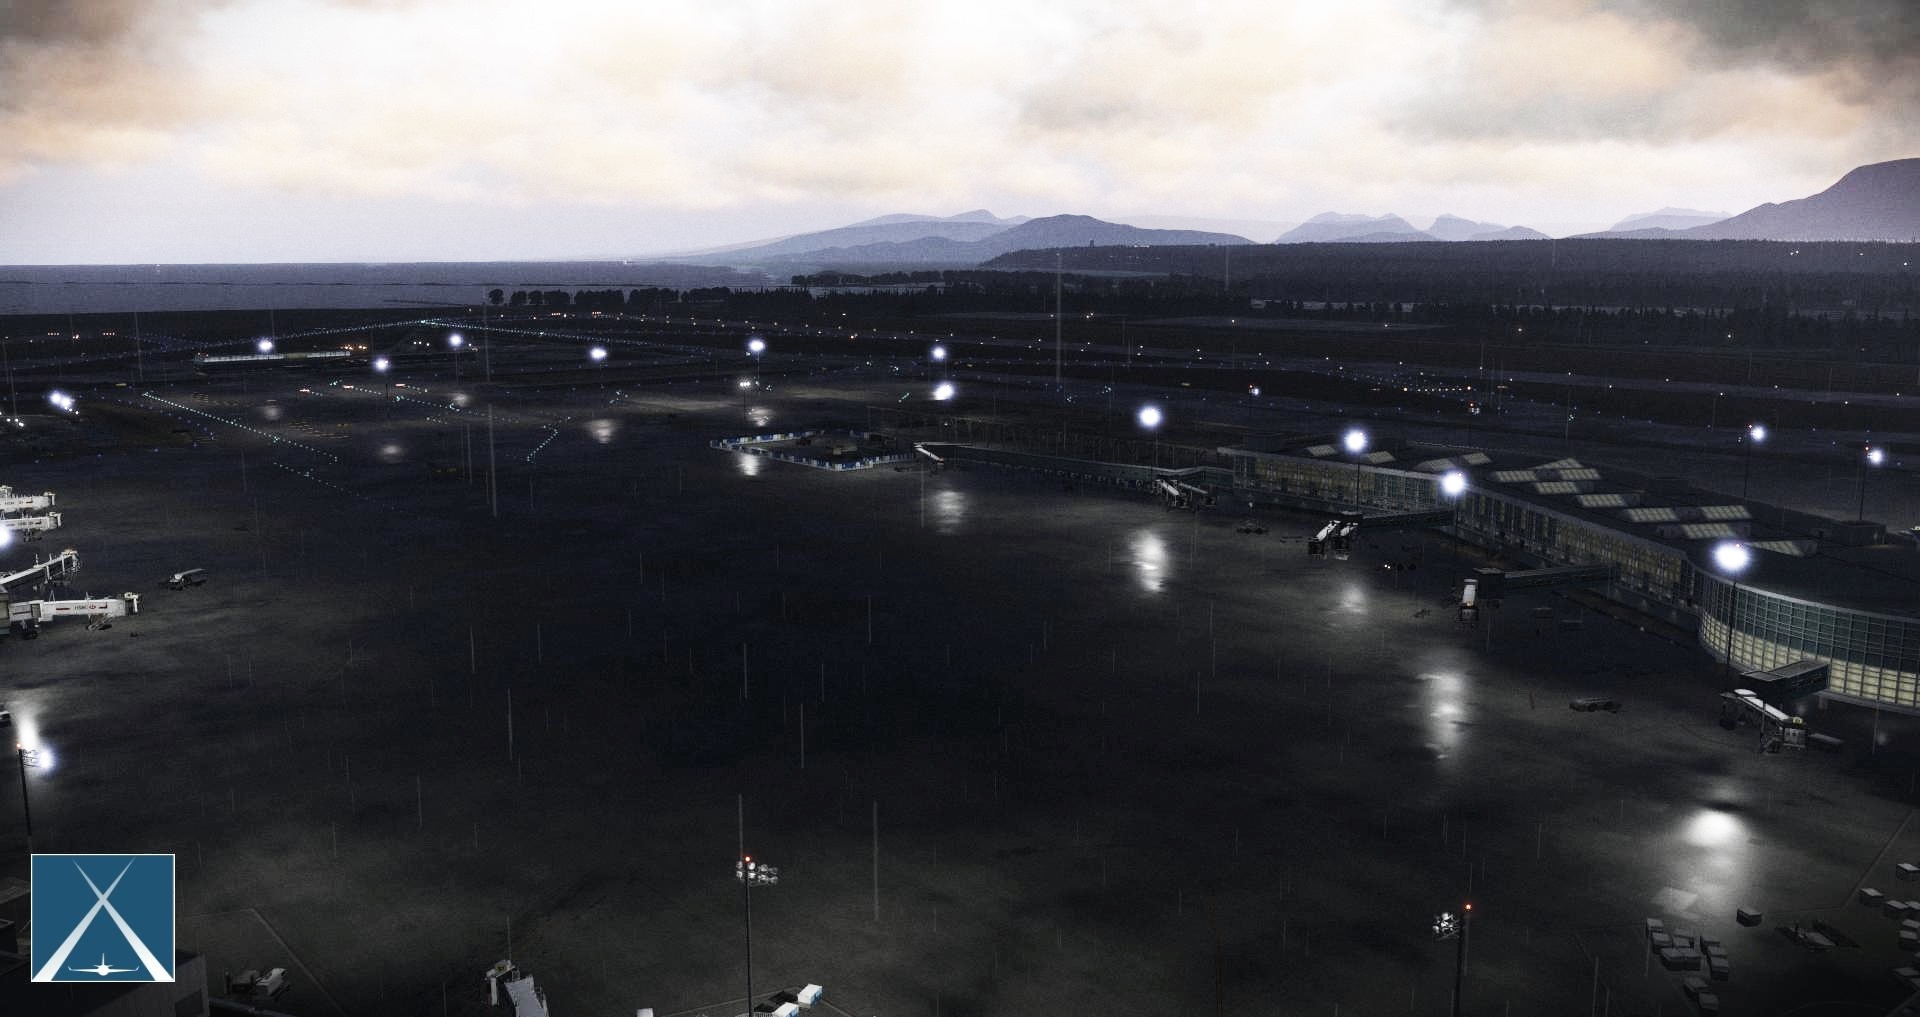 GLOBALL ART - CYVR - VANCOUVER INTERNATIONAL AIRPORT X-PLANE 11